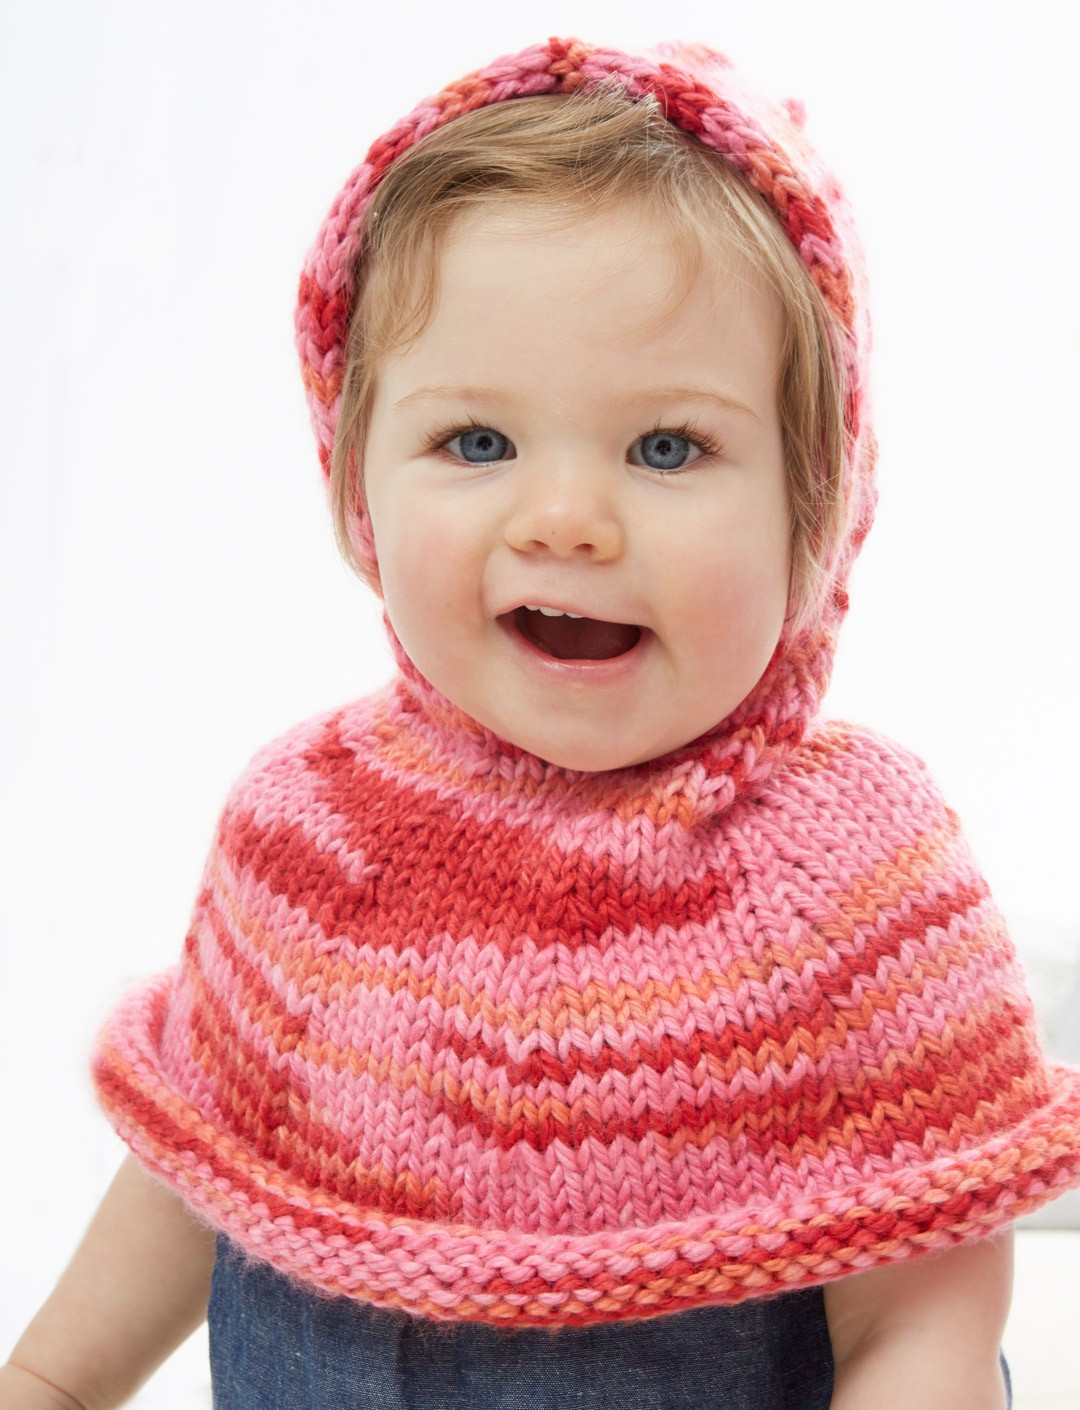 Inspirational Little E Hoo Knitting Patterns Baby Poncho Pattern Of Gorgeous 49 Images Baby Poncho Pattern